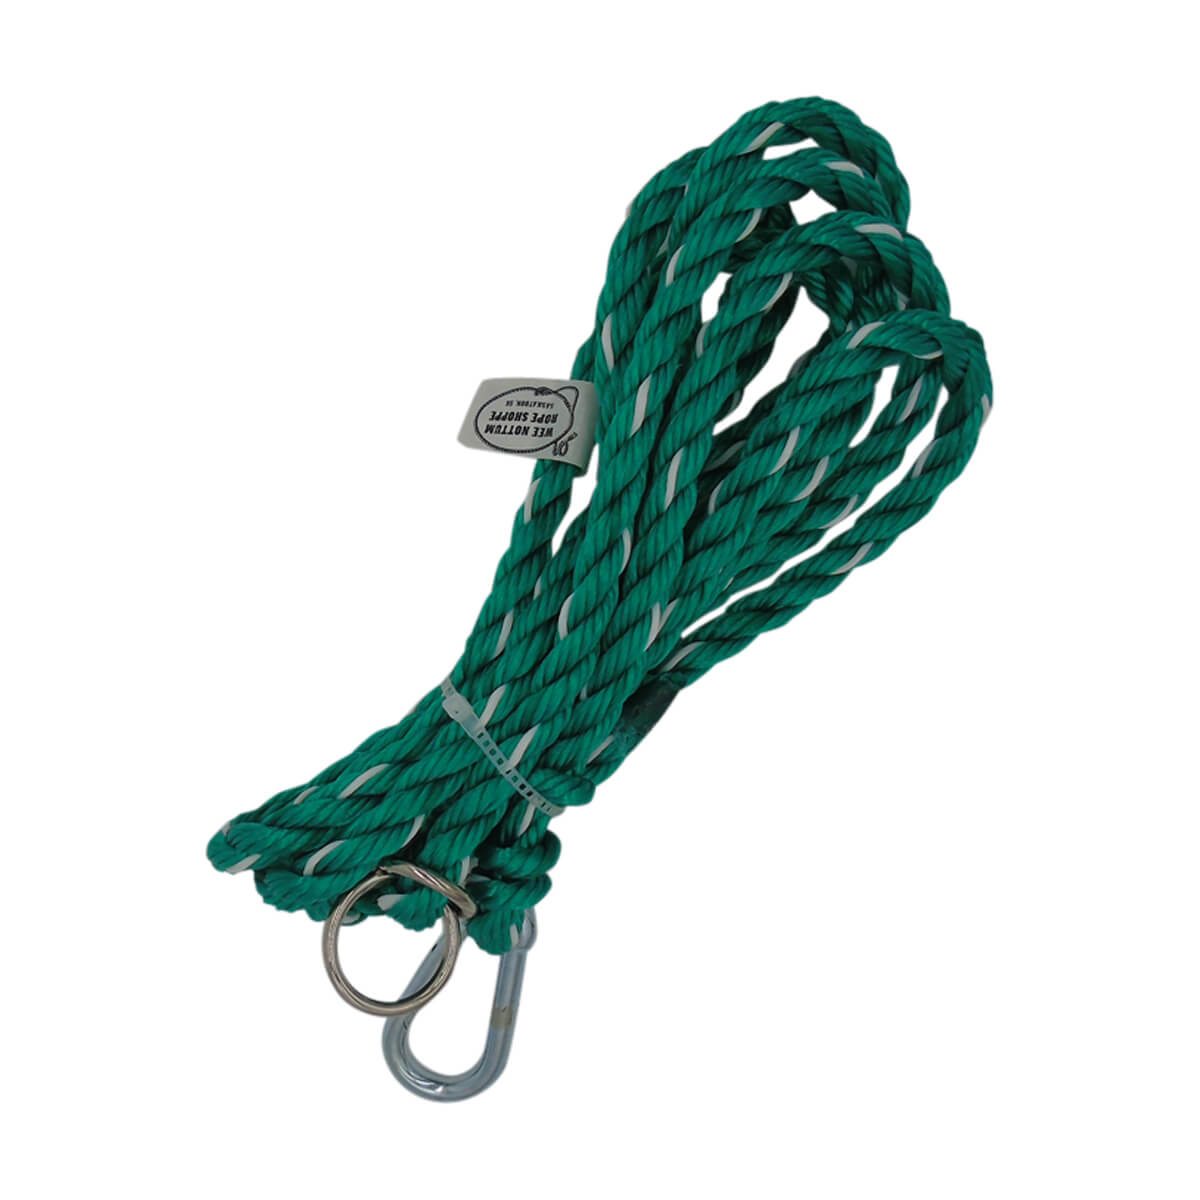 Adjustable Rope Halter Tie-Out - Green